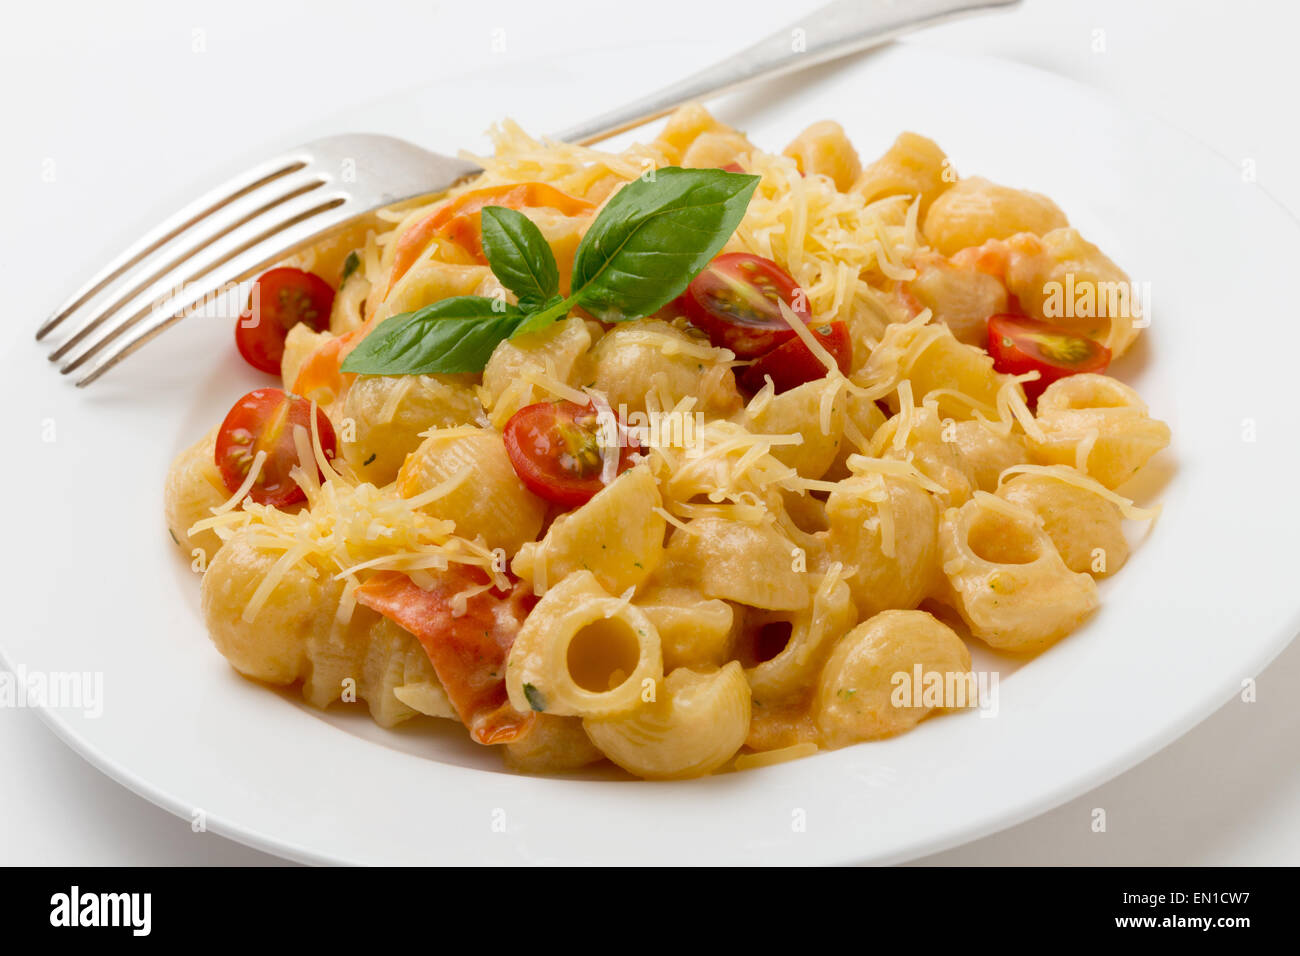 Gomiti rigata 'elbow' pasta tossed with tomatoes cooked in cream with green pesto, cherry tomatoes and grated - Stock Image